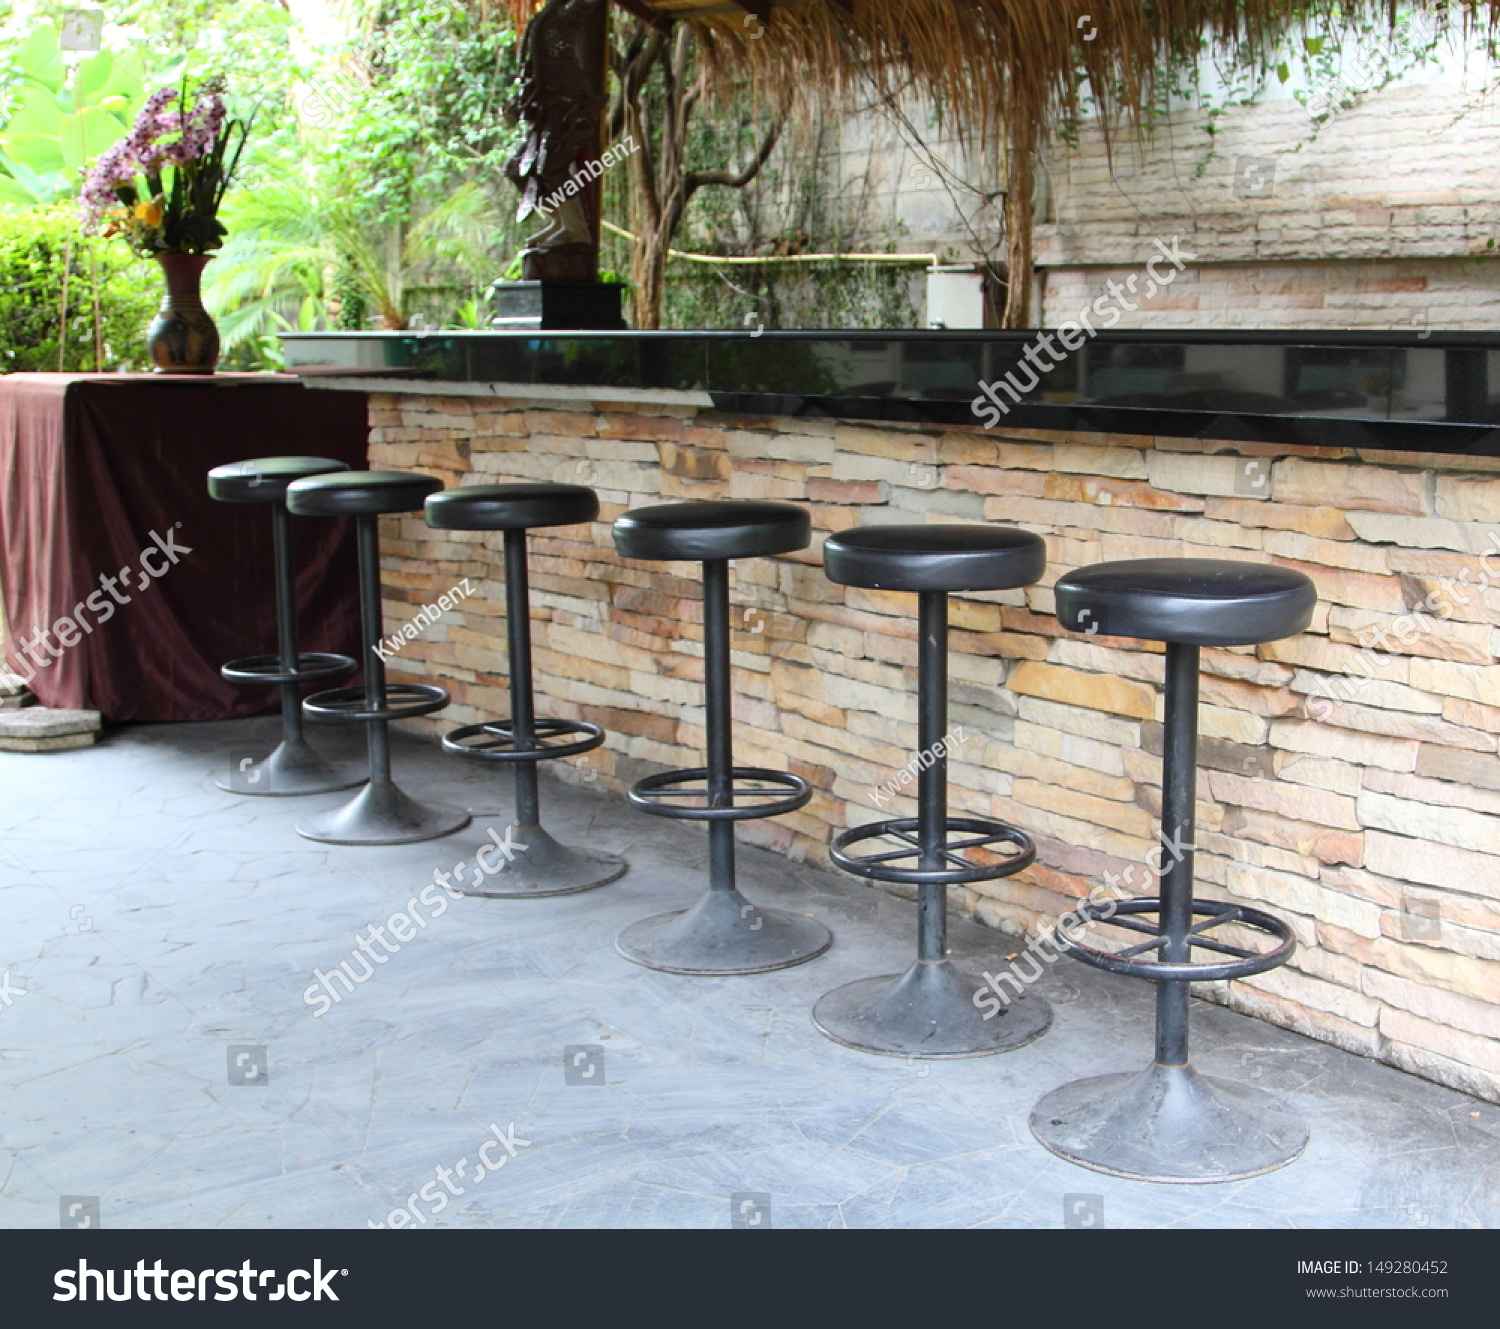 bar free image photo and stool shutterstock counter stock outdoor stools royalty